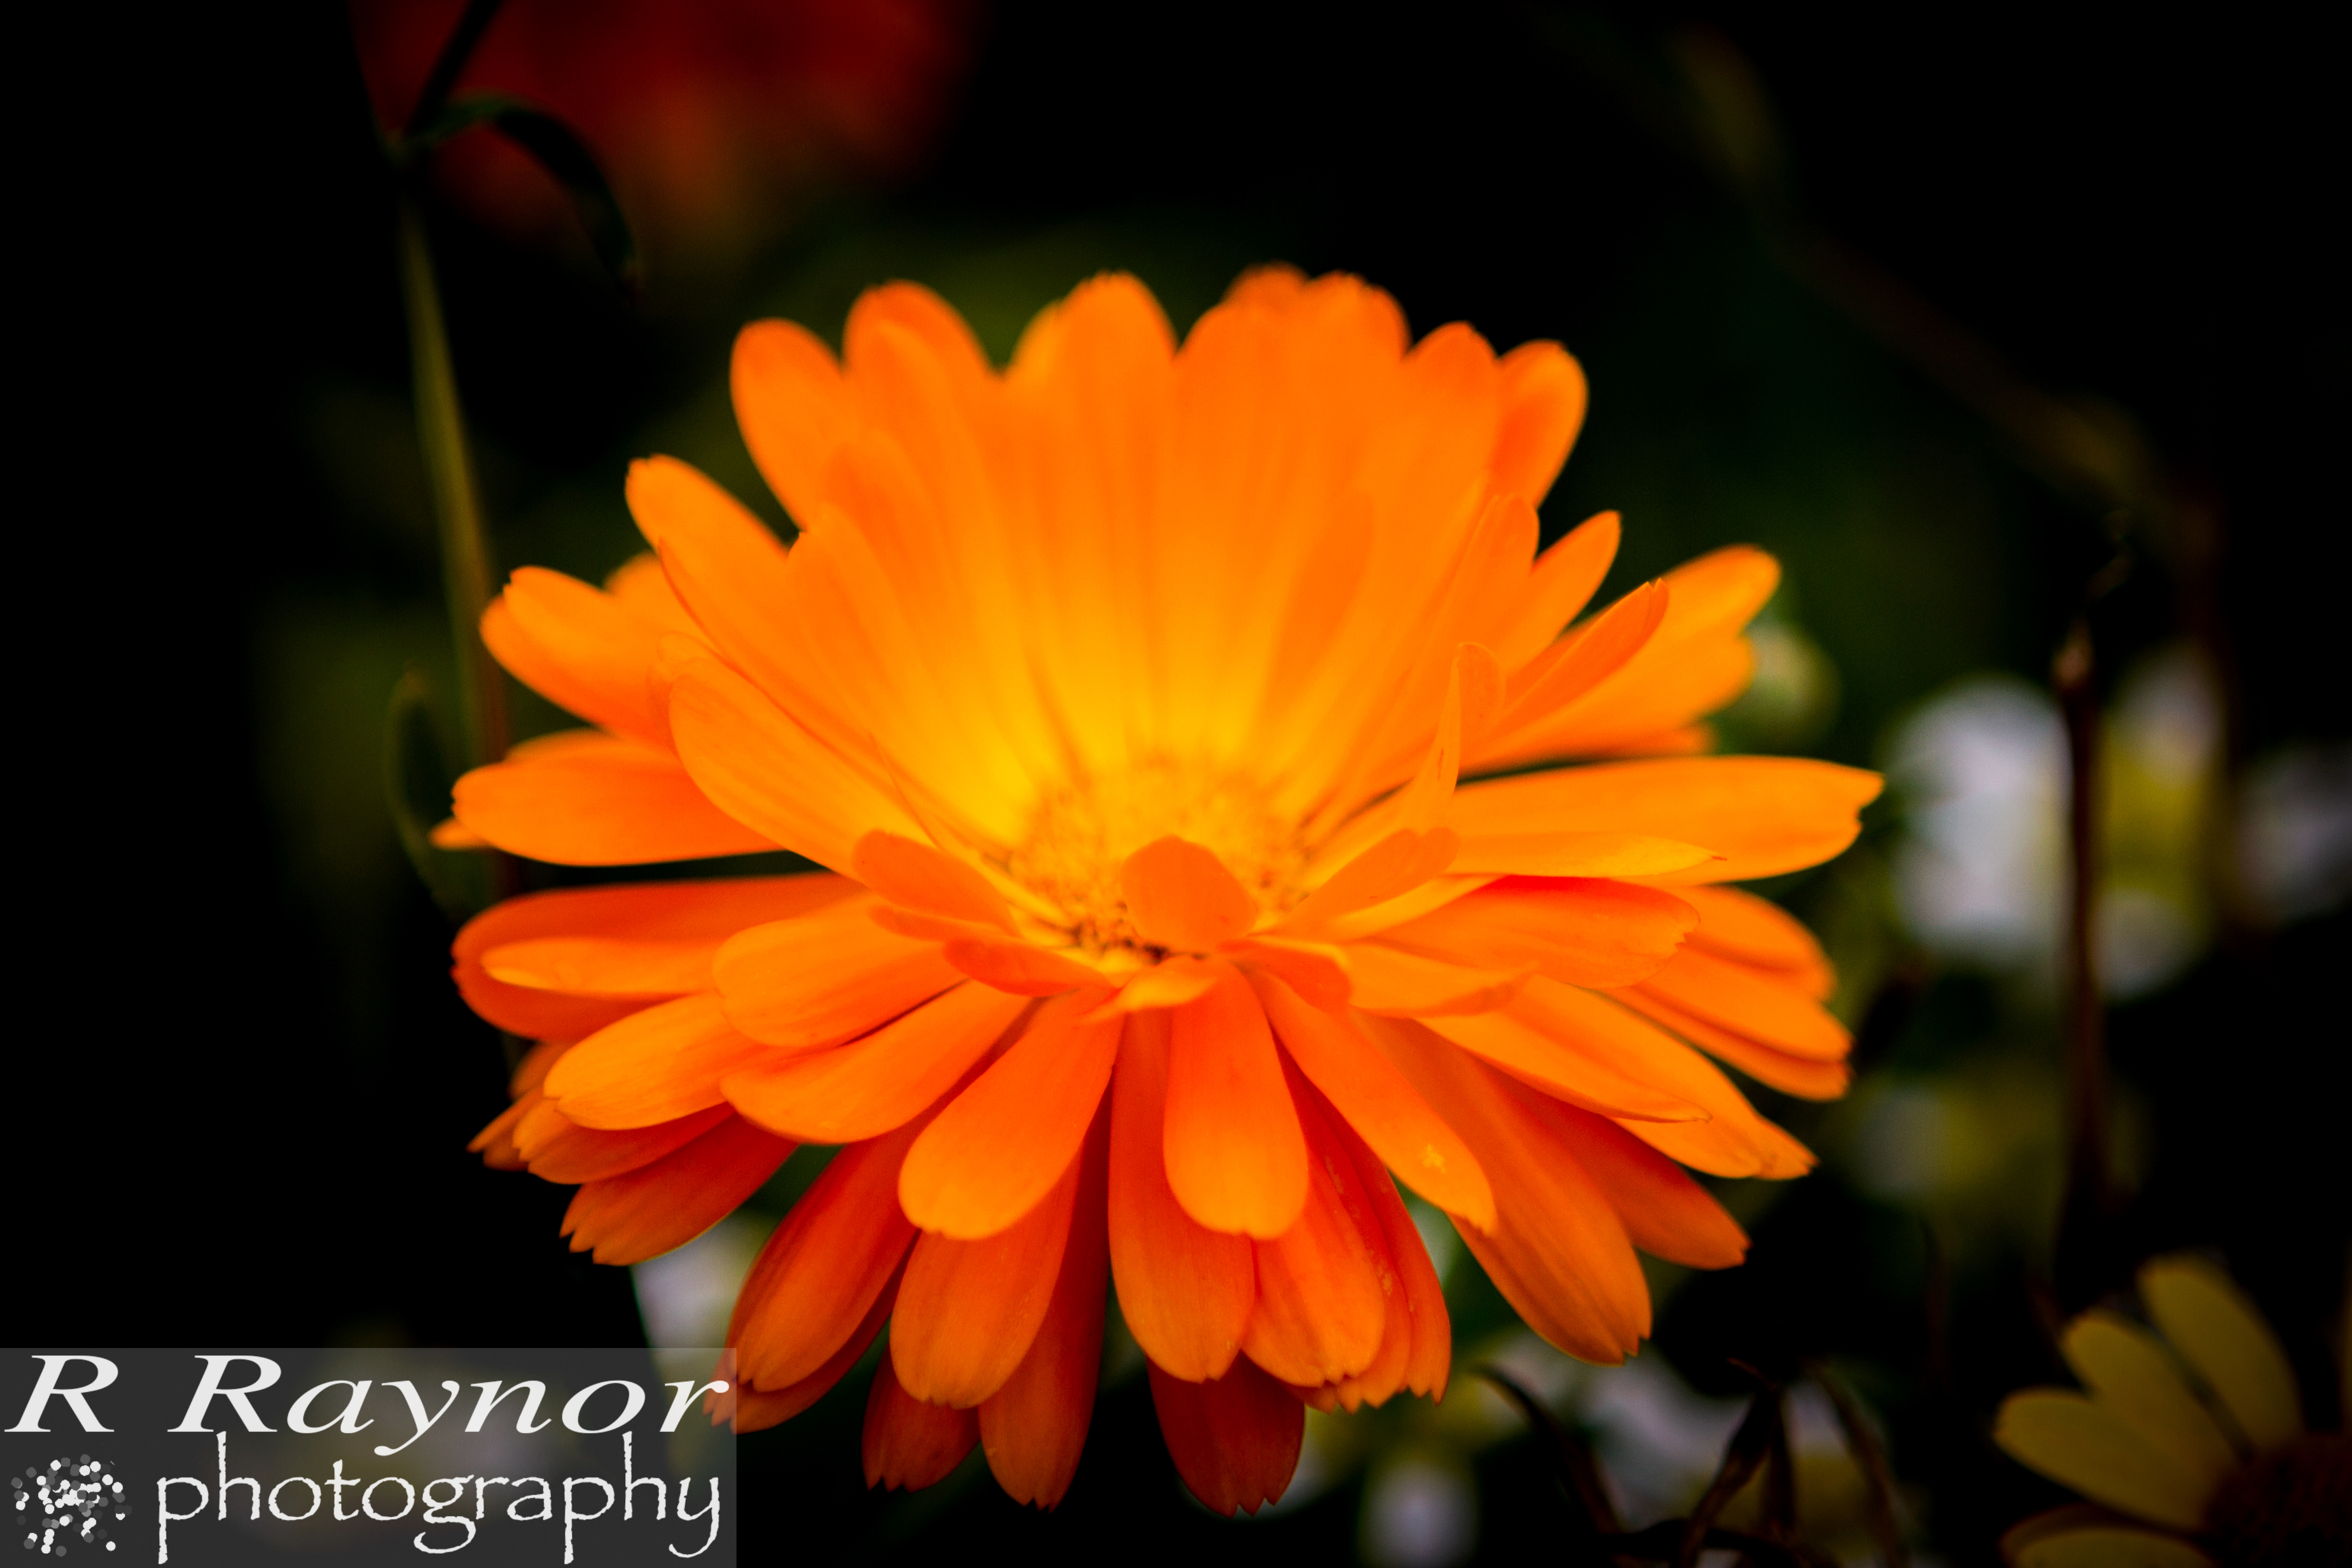 First_20150903_RRaynor0013